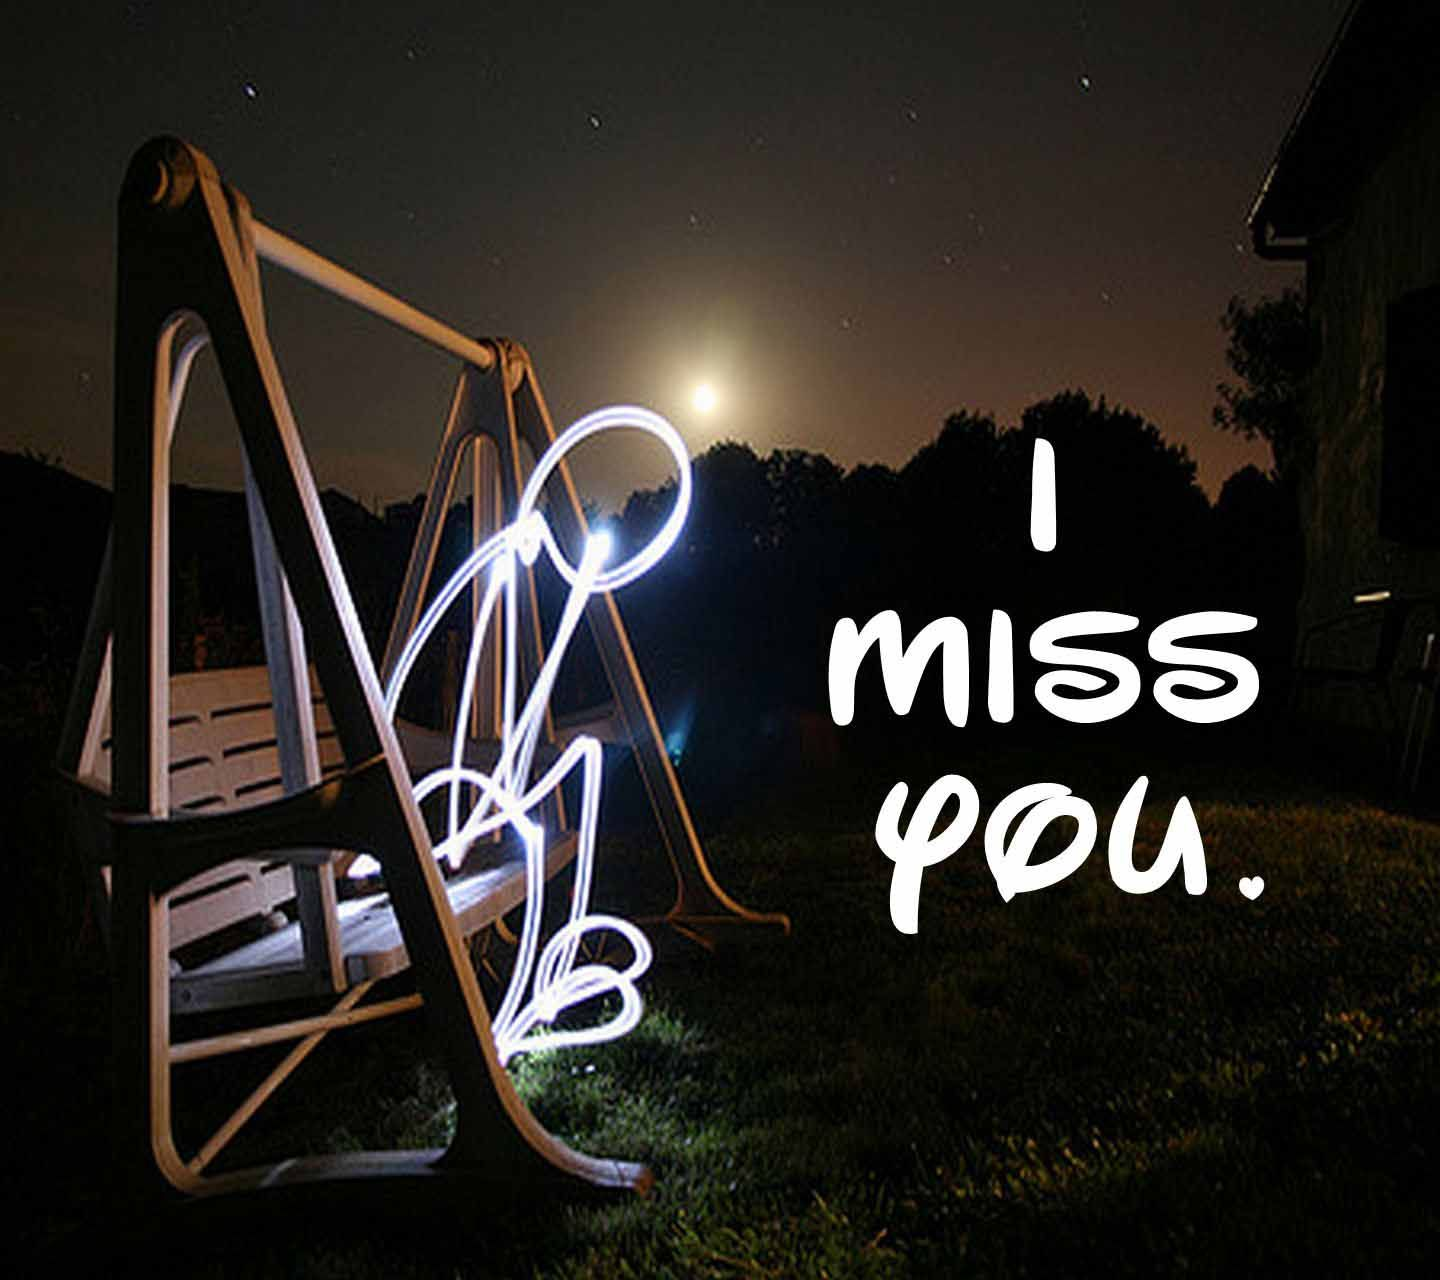 I Miss You Hd Wallpapers I miss you wallpaper, Miss you